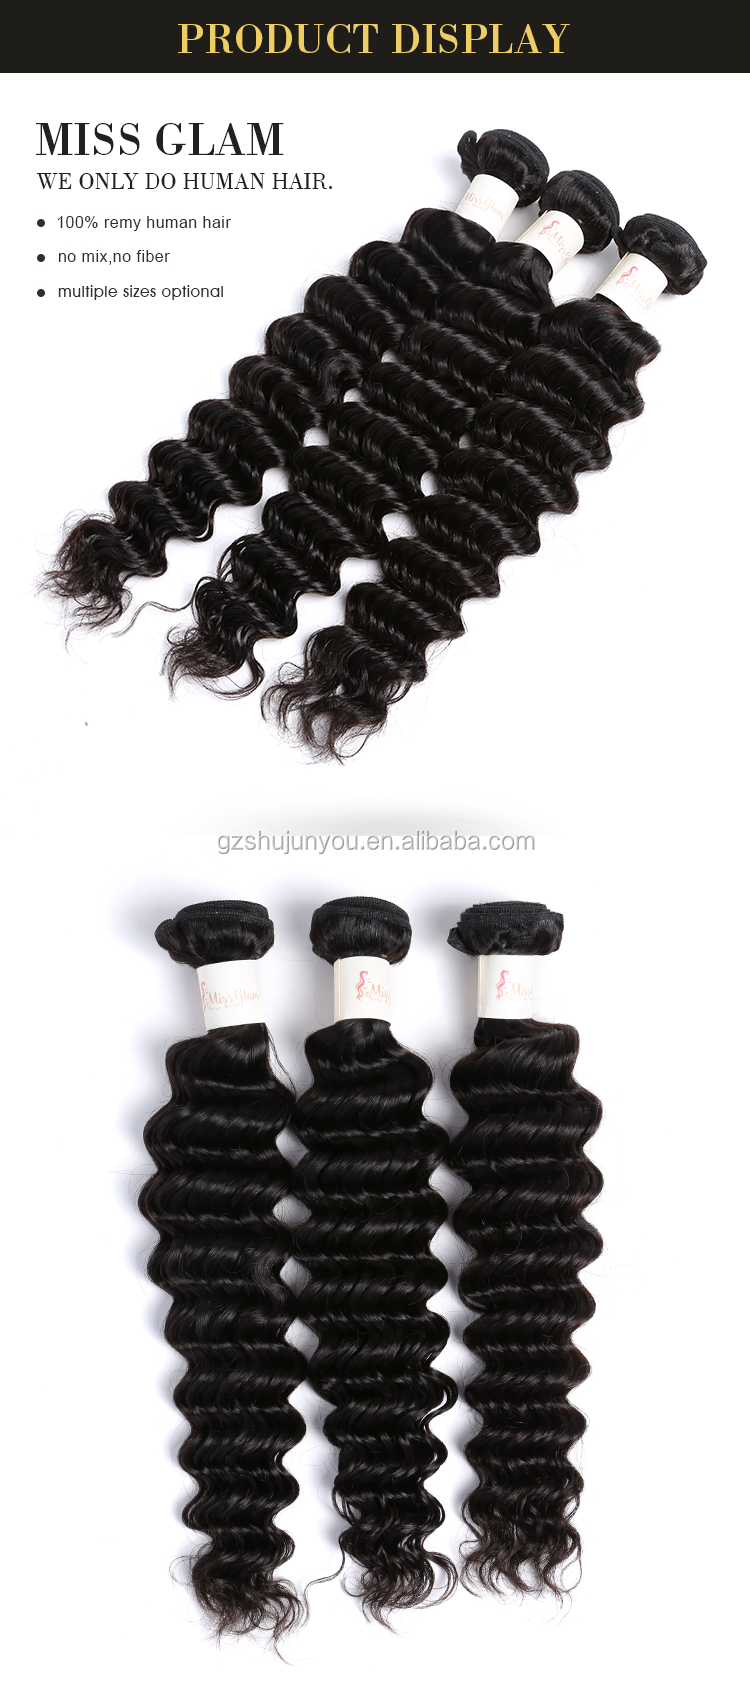 Wholesale real 100% raw virgin brazilian human cuticle aligned hair weave vendors, mink brazilian hair bundles with closure